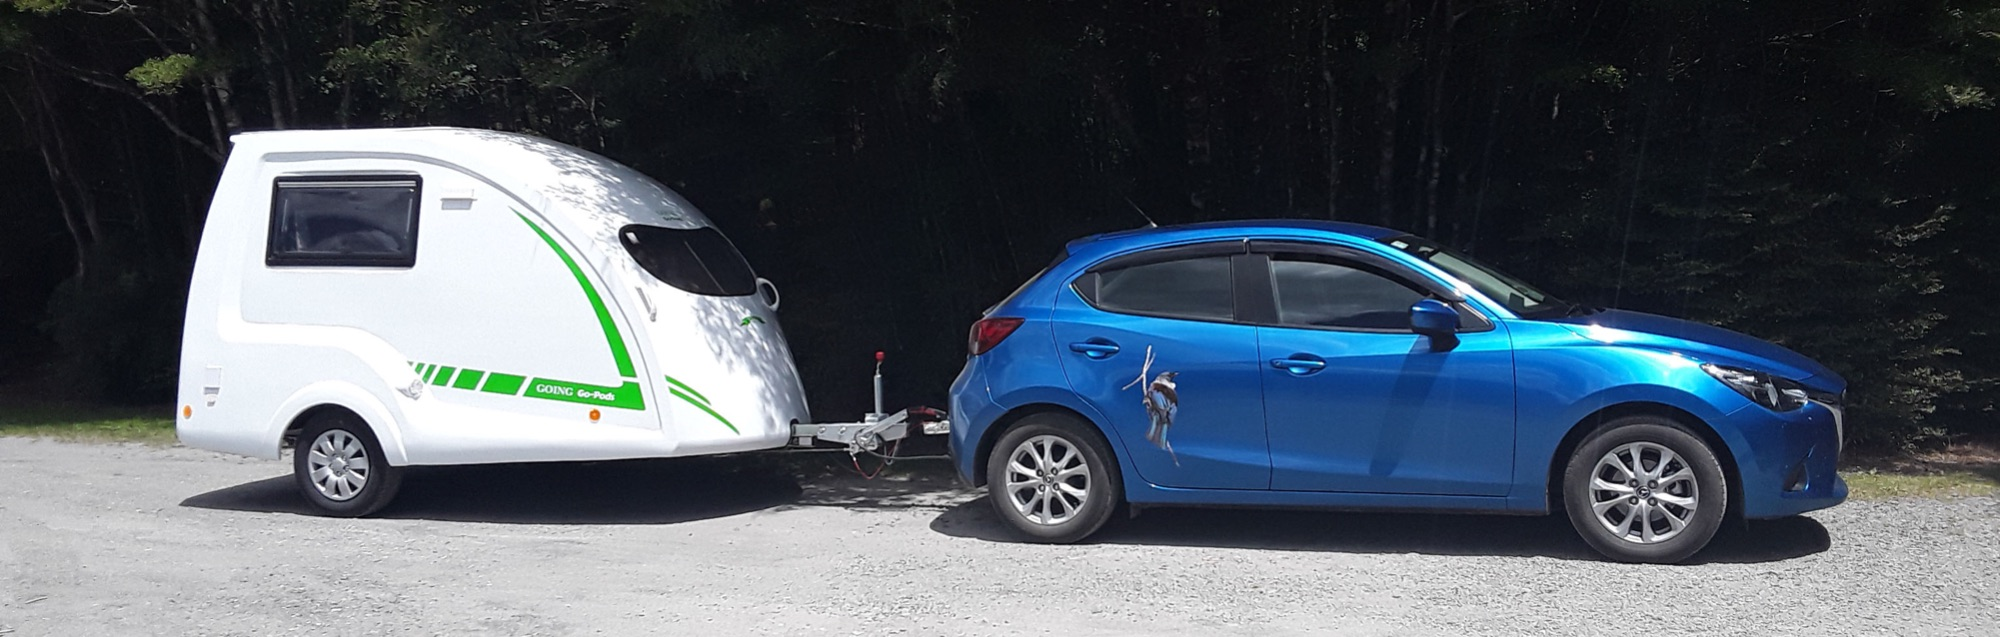 GO-POD & MAZDA 2 IN NEW ZEALAND